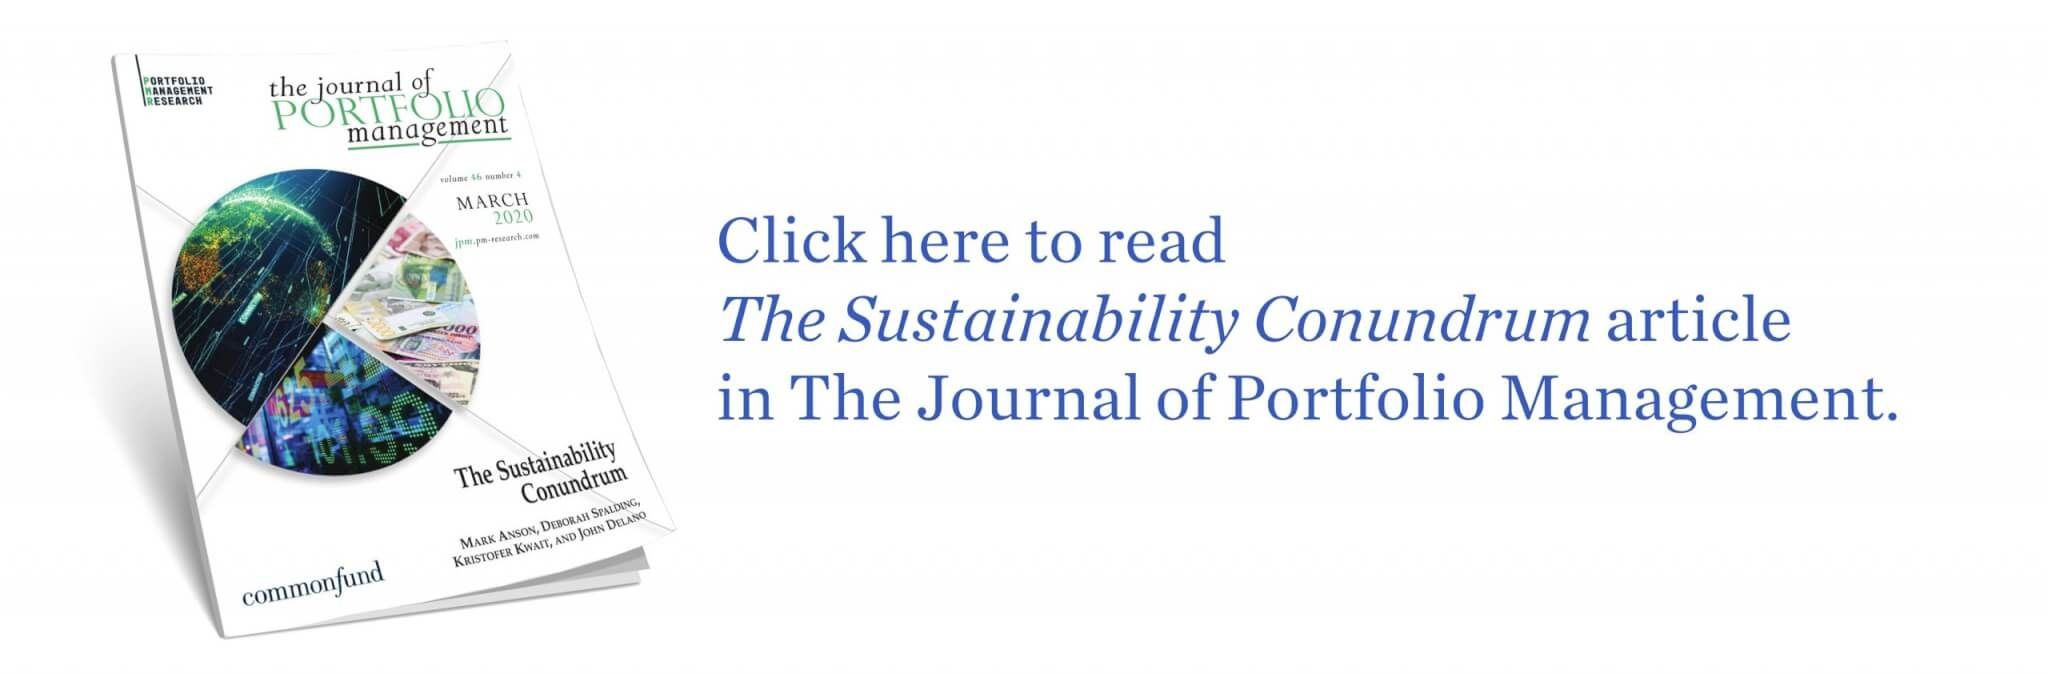 Download the Sustainability Conundrum article published in the Journal of Portfolio Management